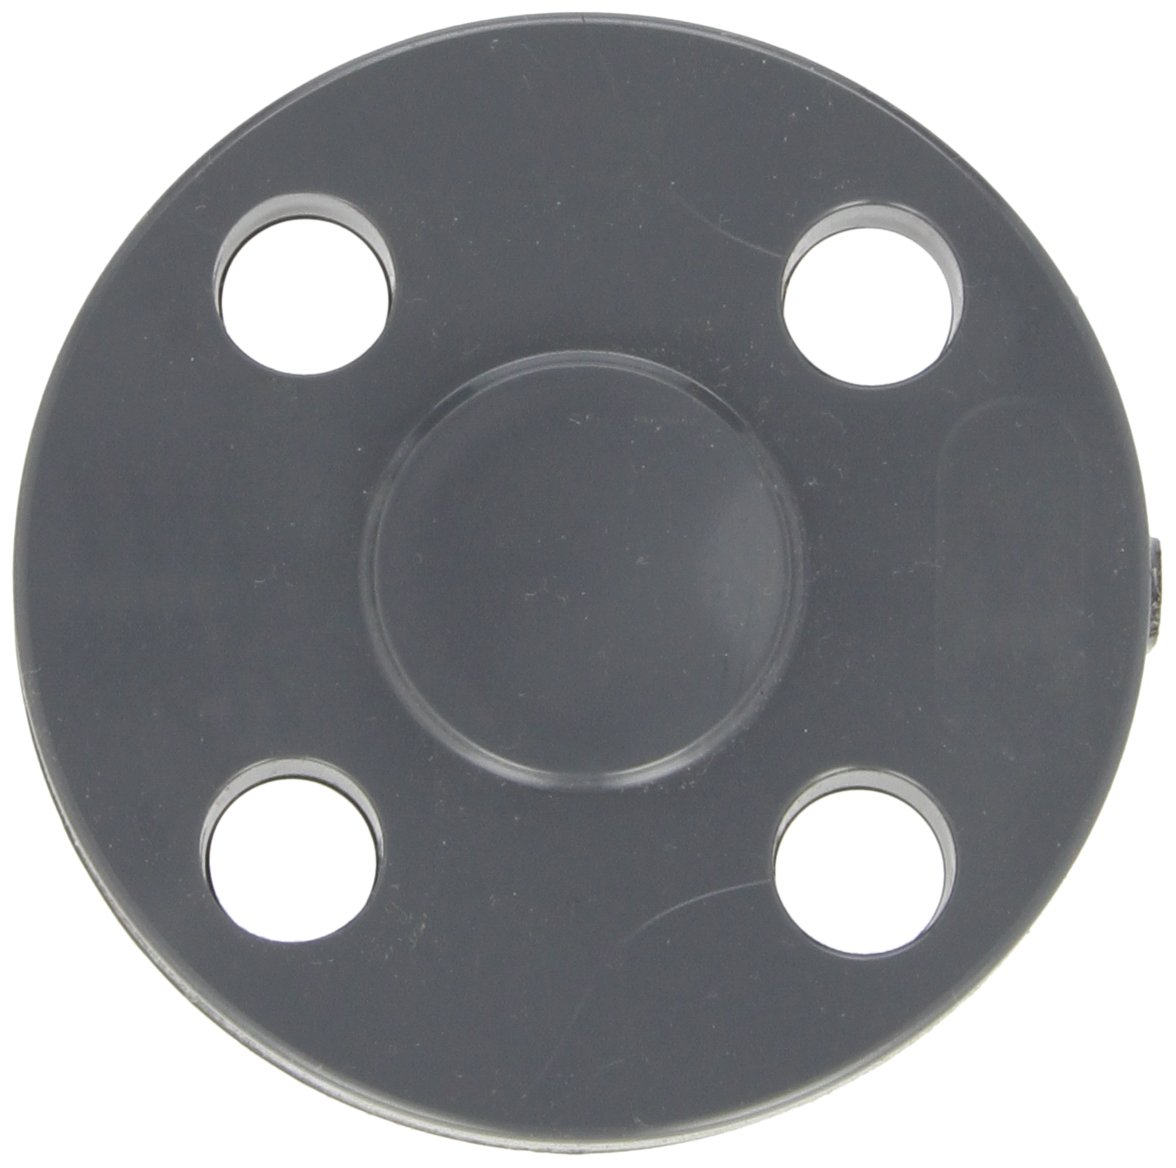 Gray Blind Flange 4 Schedule 80 GF Piping Systems PVC Pipe Fitting